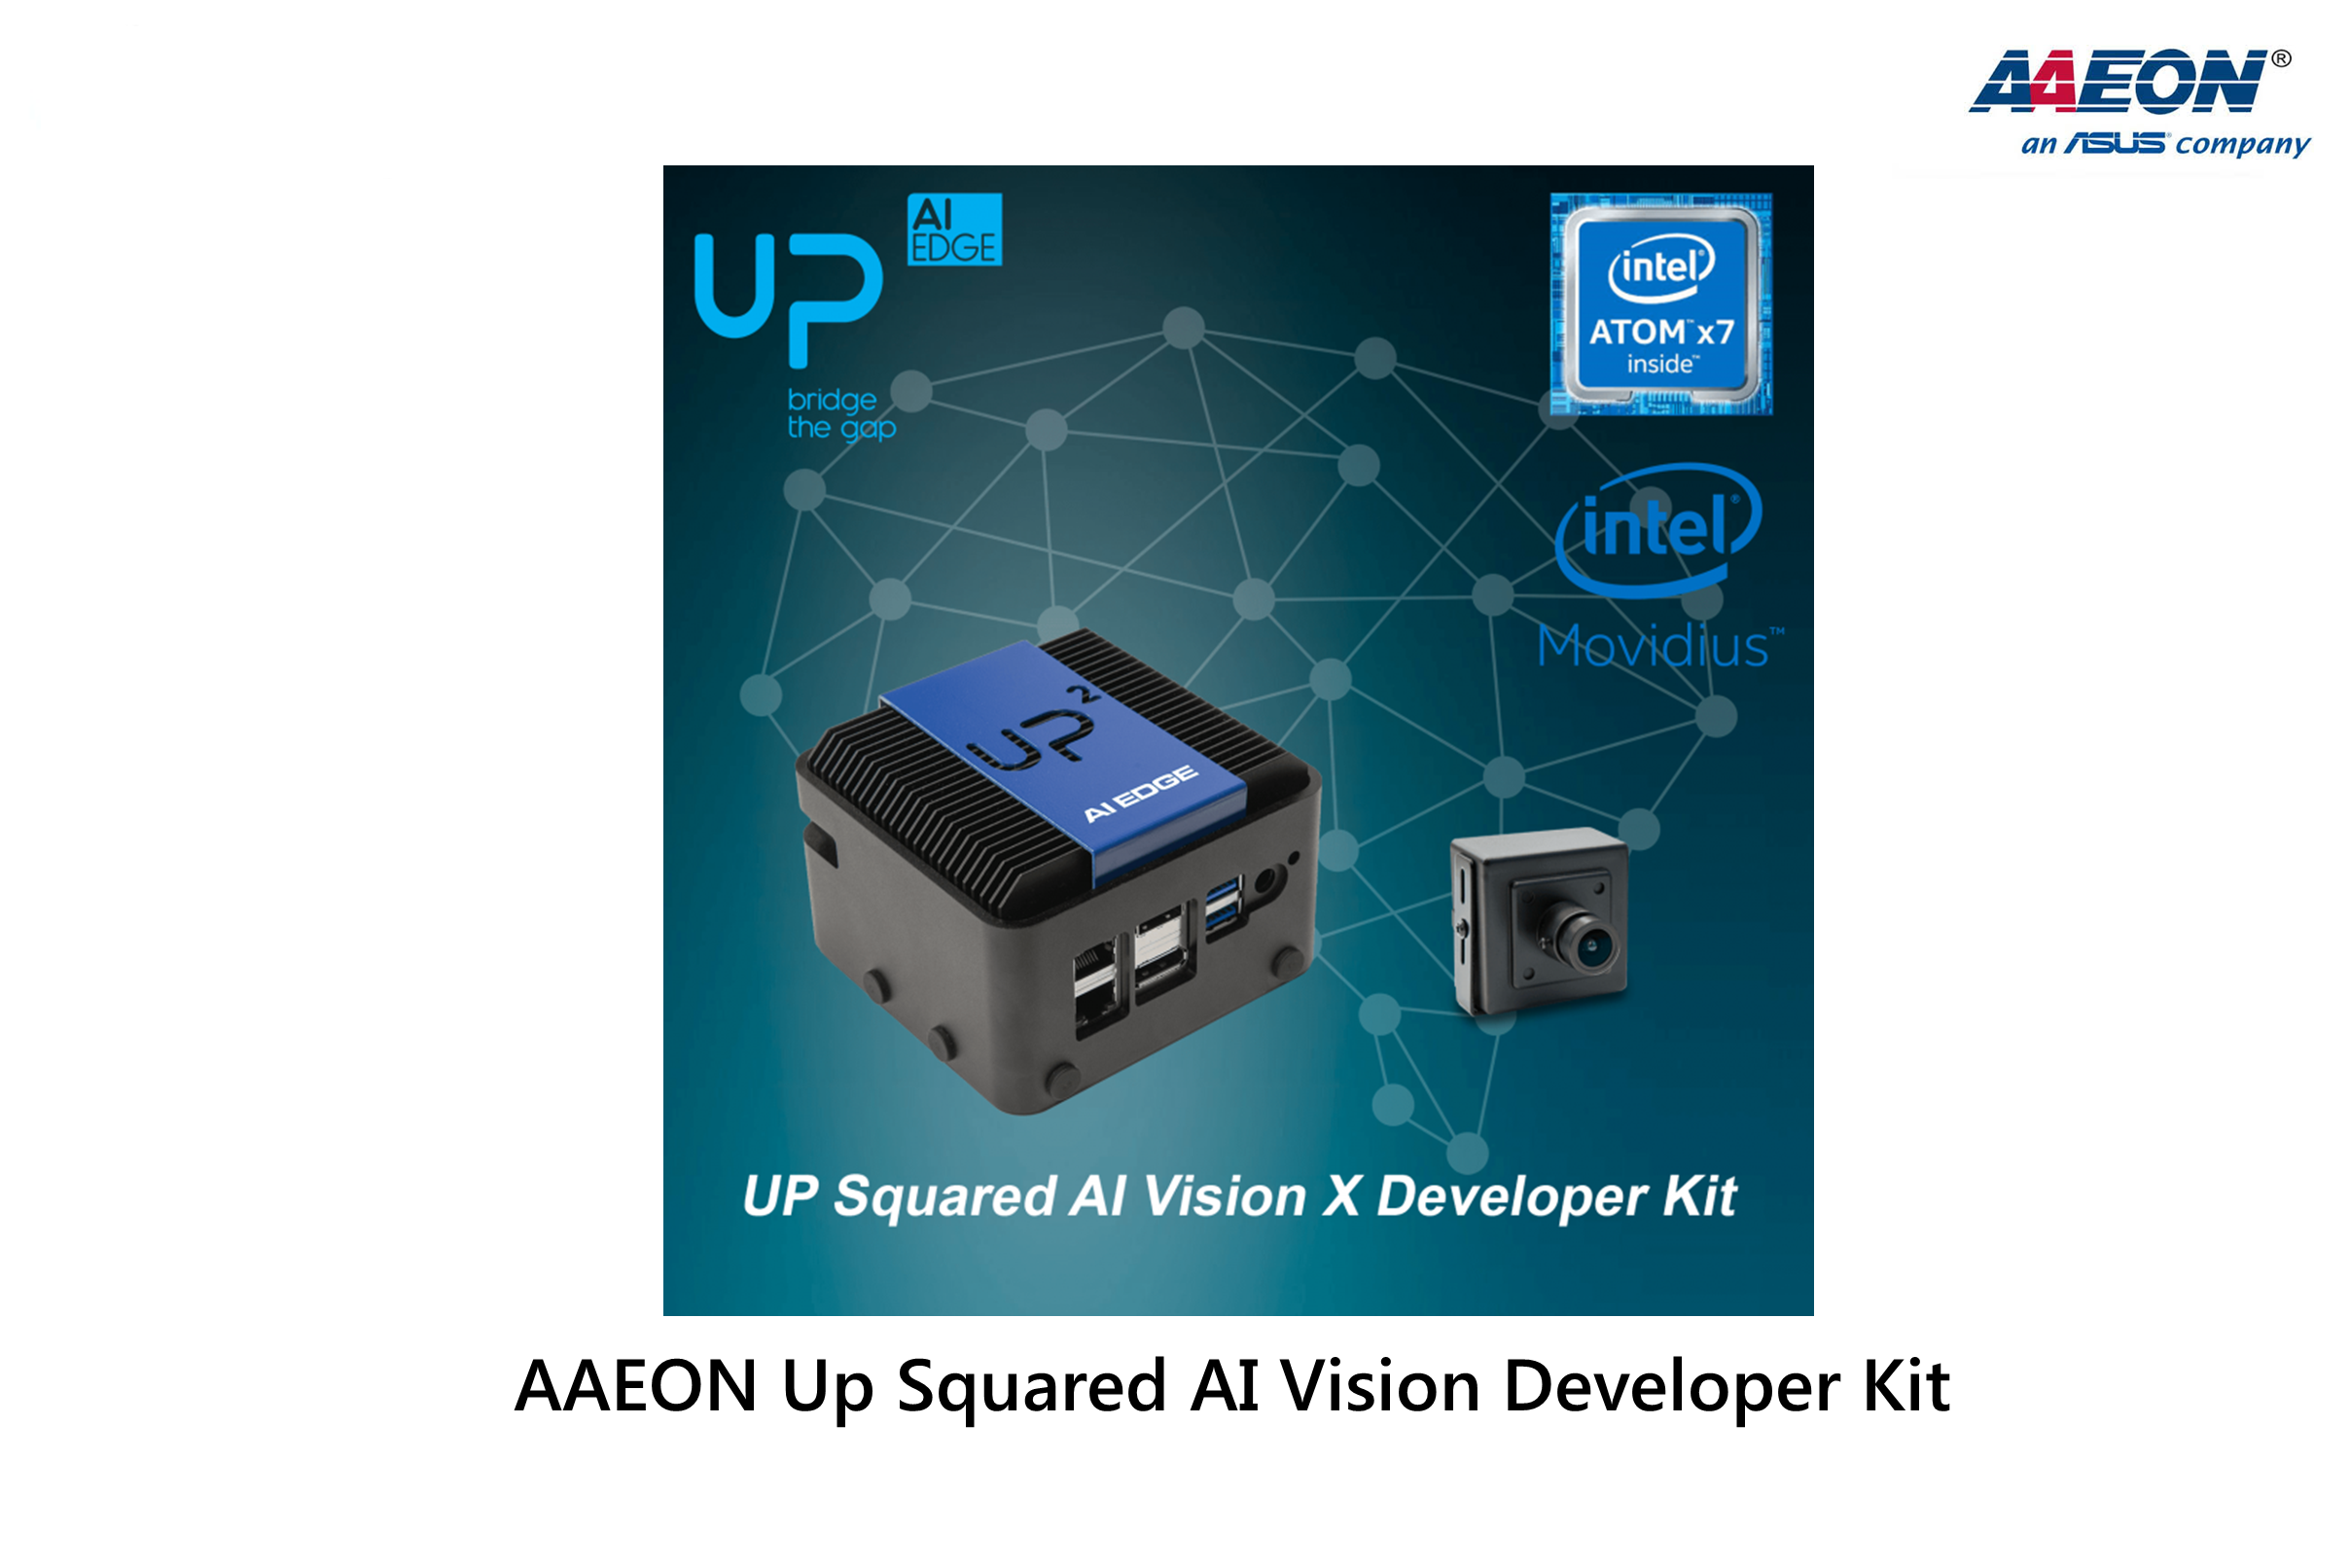 AAEON Up Squared AI Vision Developer Kit